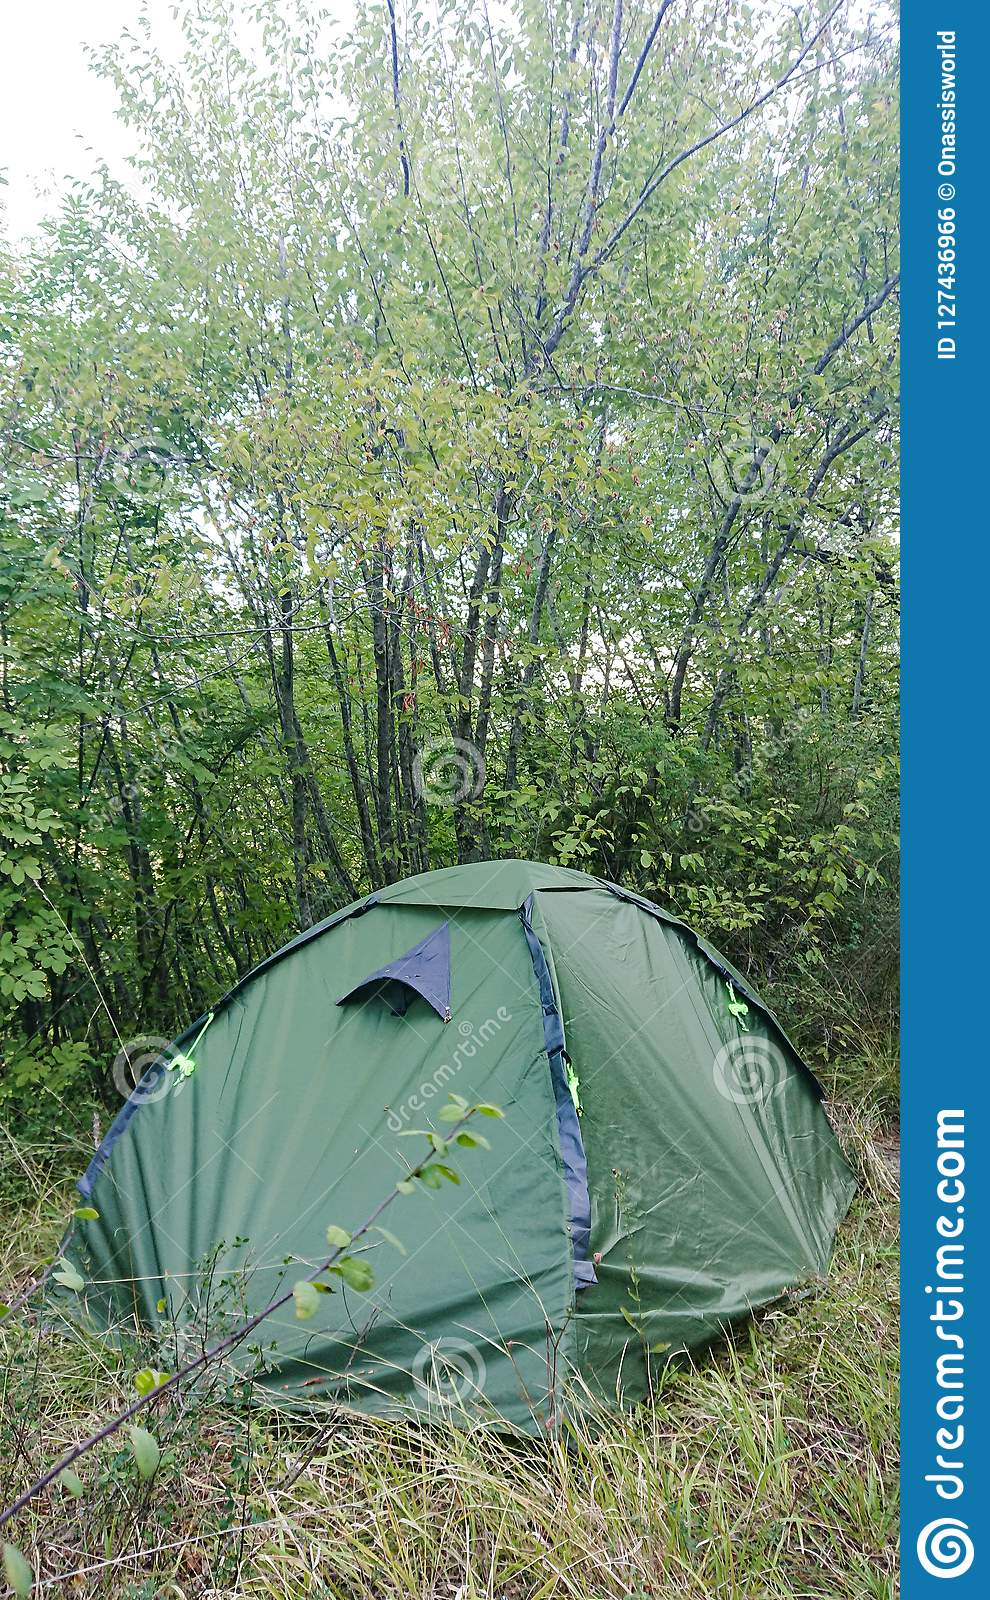 A two man green tent pitched in the countryside. & Wild Camping stock photo. Image of countryside pitched - 127436966